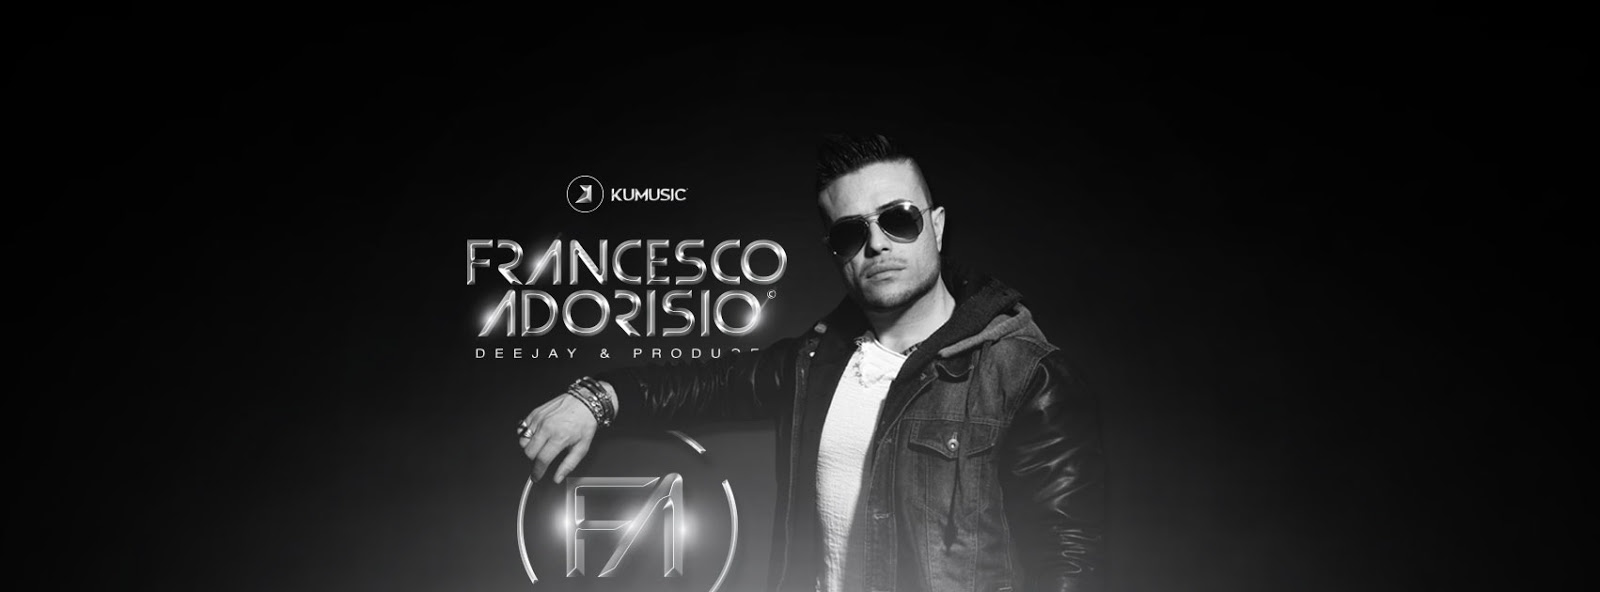 Il sound di Francesco Adorisio: House, Electro - Pop, Deep & Electronic